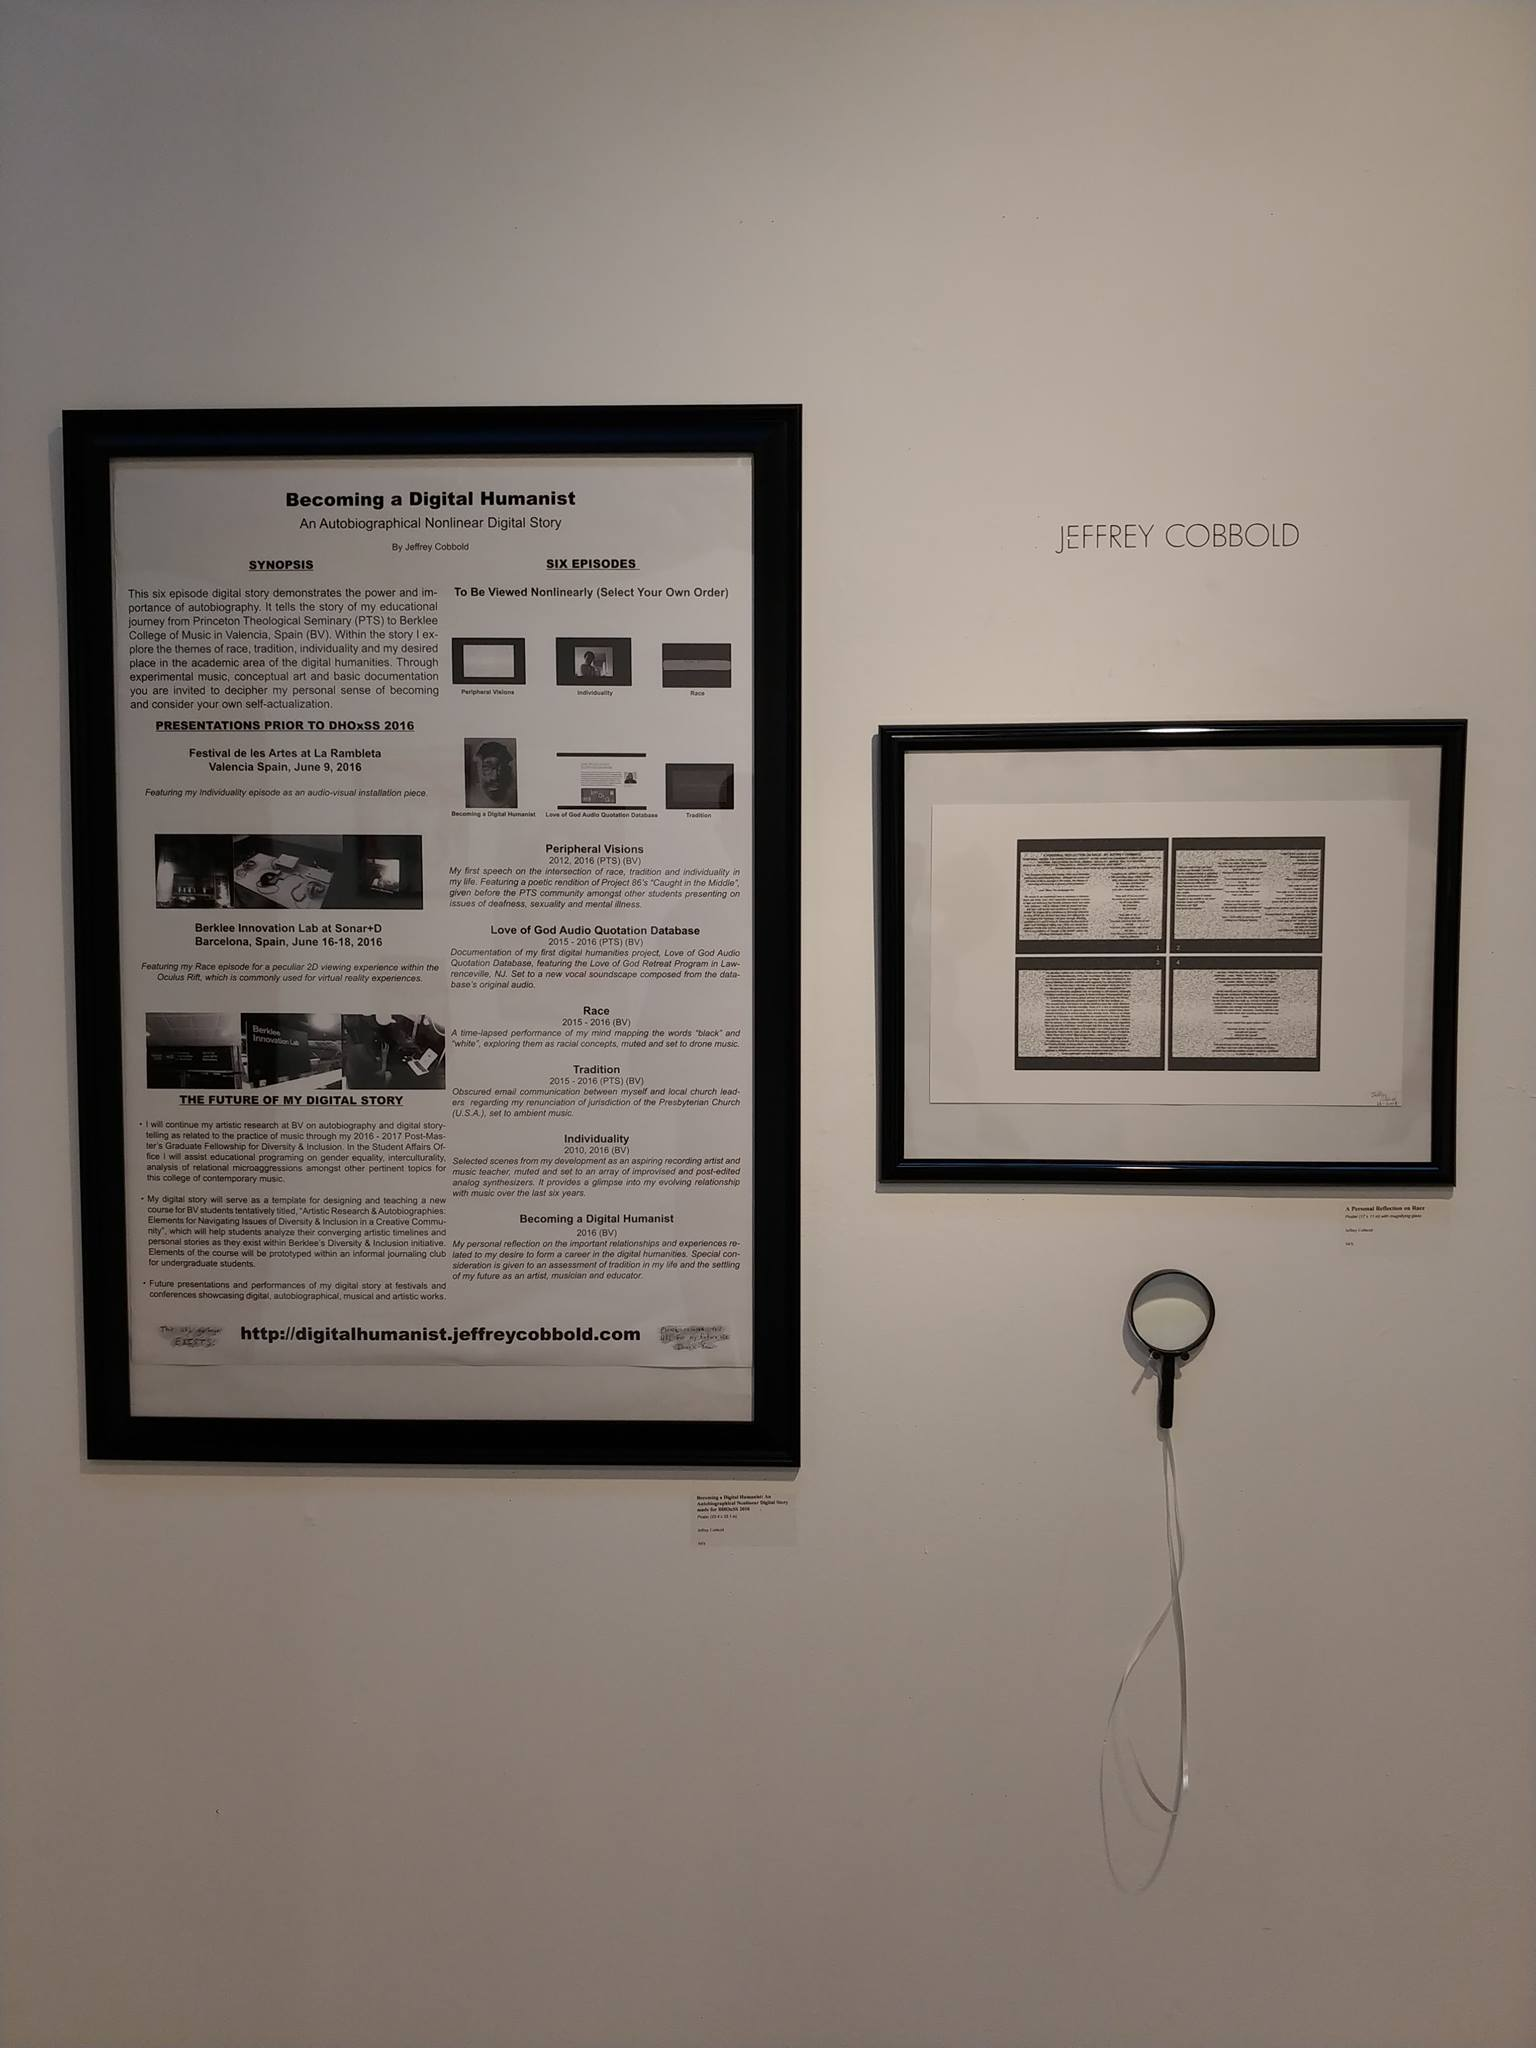 Gallery photo of the posters  Becoming a Digital Humanist: An Autobiographical Nonlinear Digital Story for DHOxSS 2016  (left) and  A Personal Reflection on Race  (right)   at Artworks Trenton, Trenton, New Jersey. December 2018